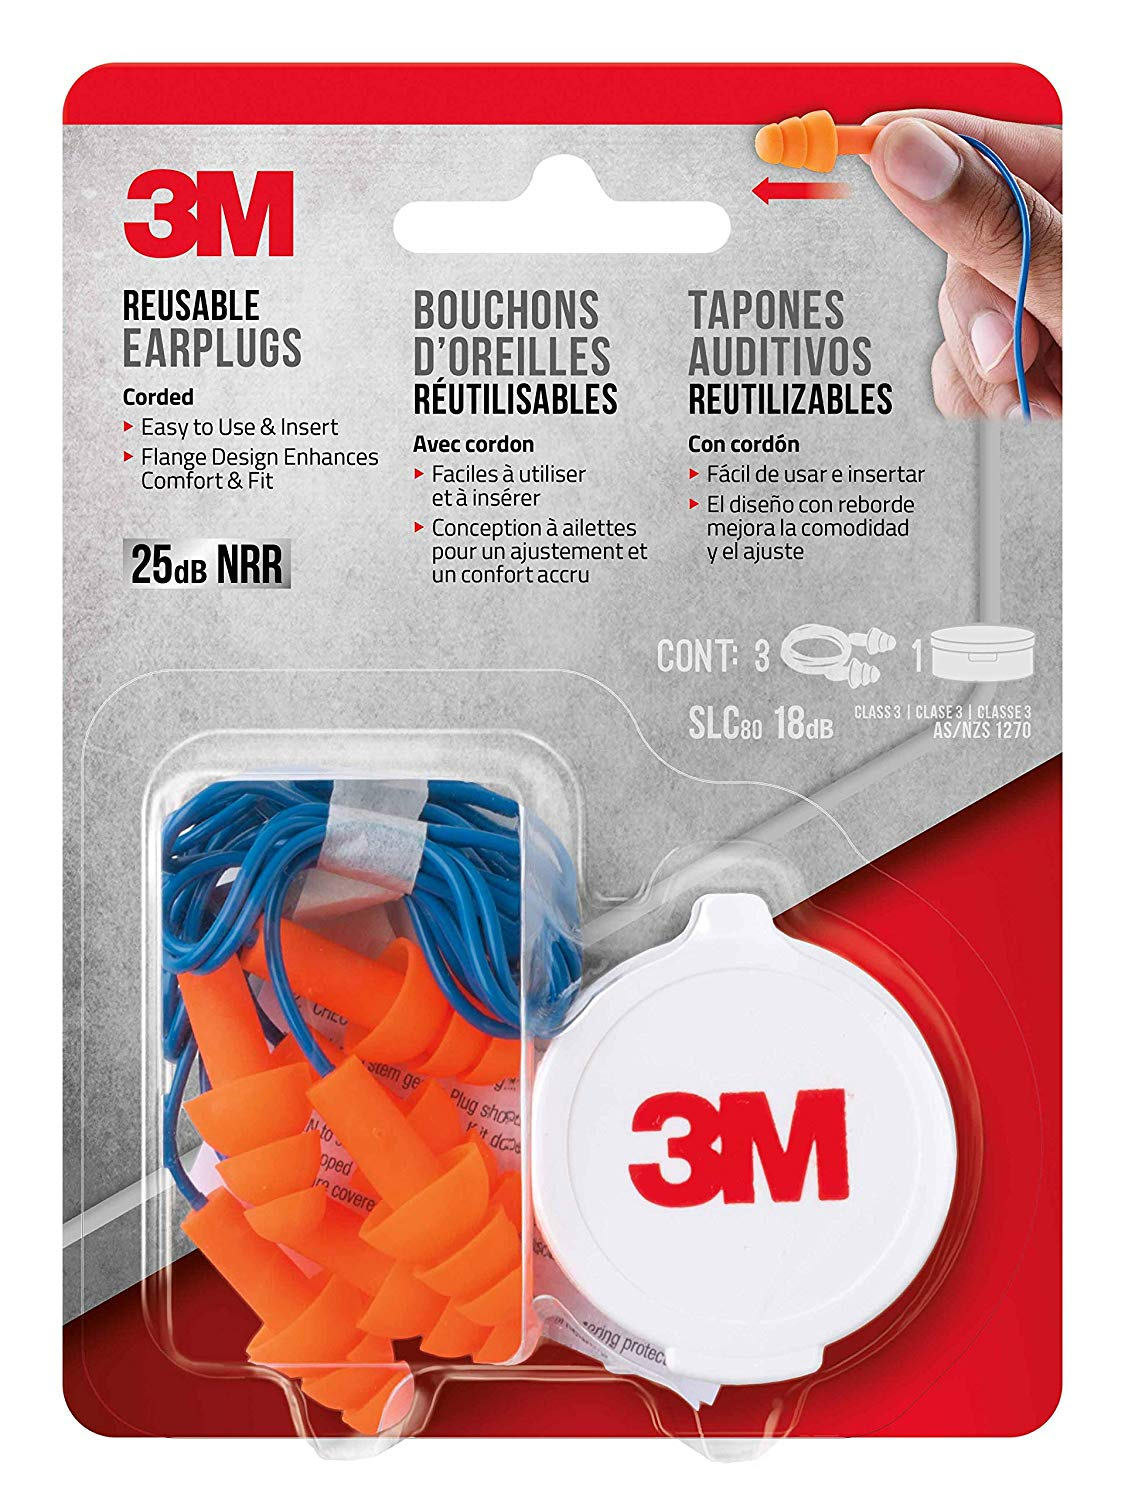 3M 90716-80025T Corded Reusable Earplug